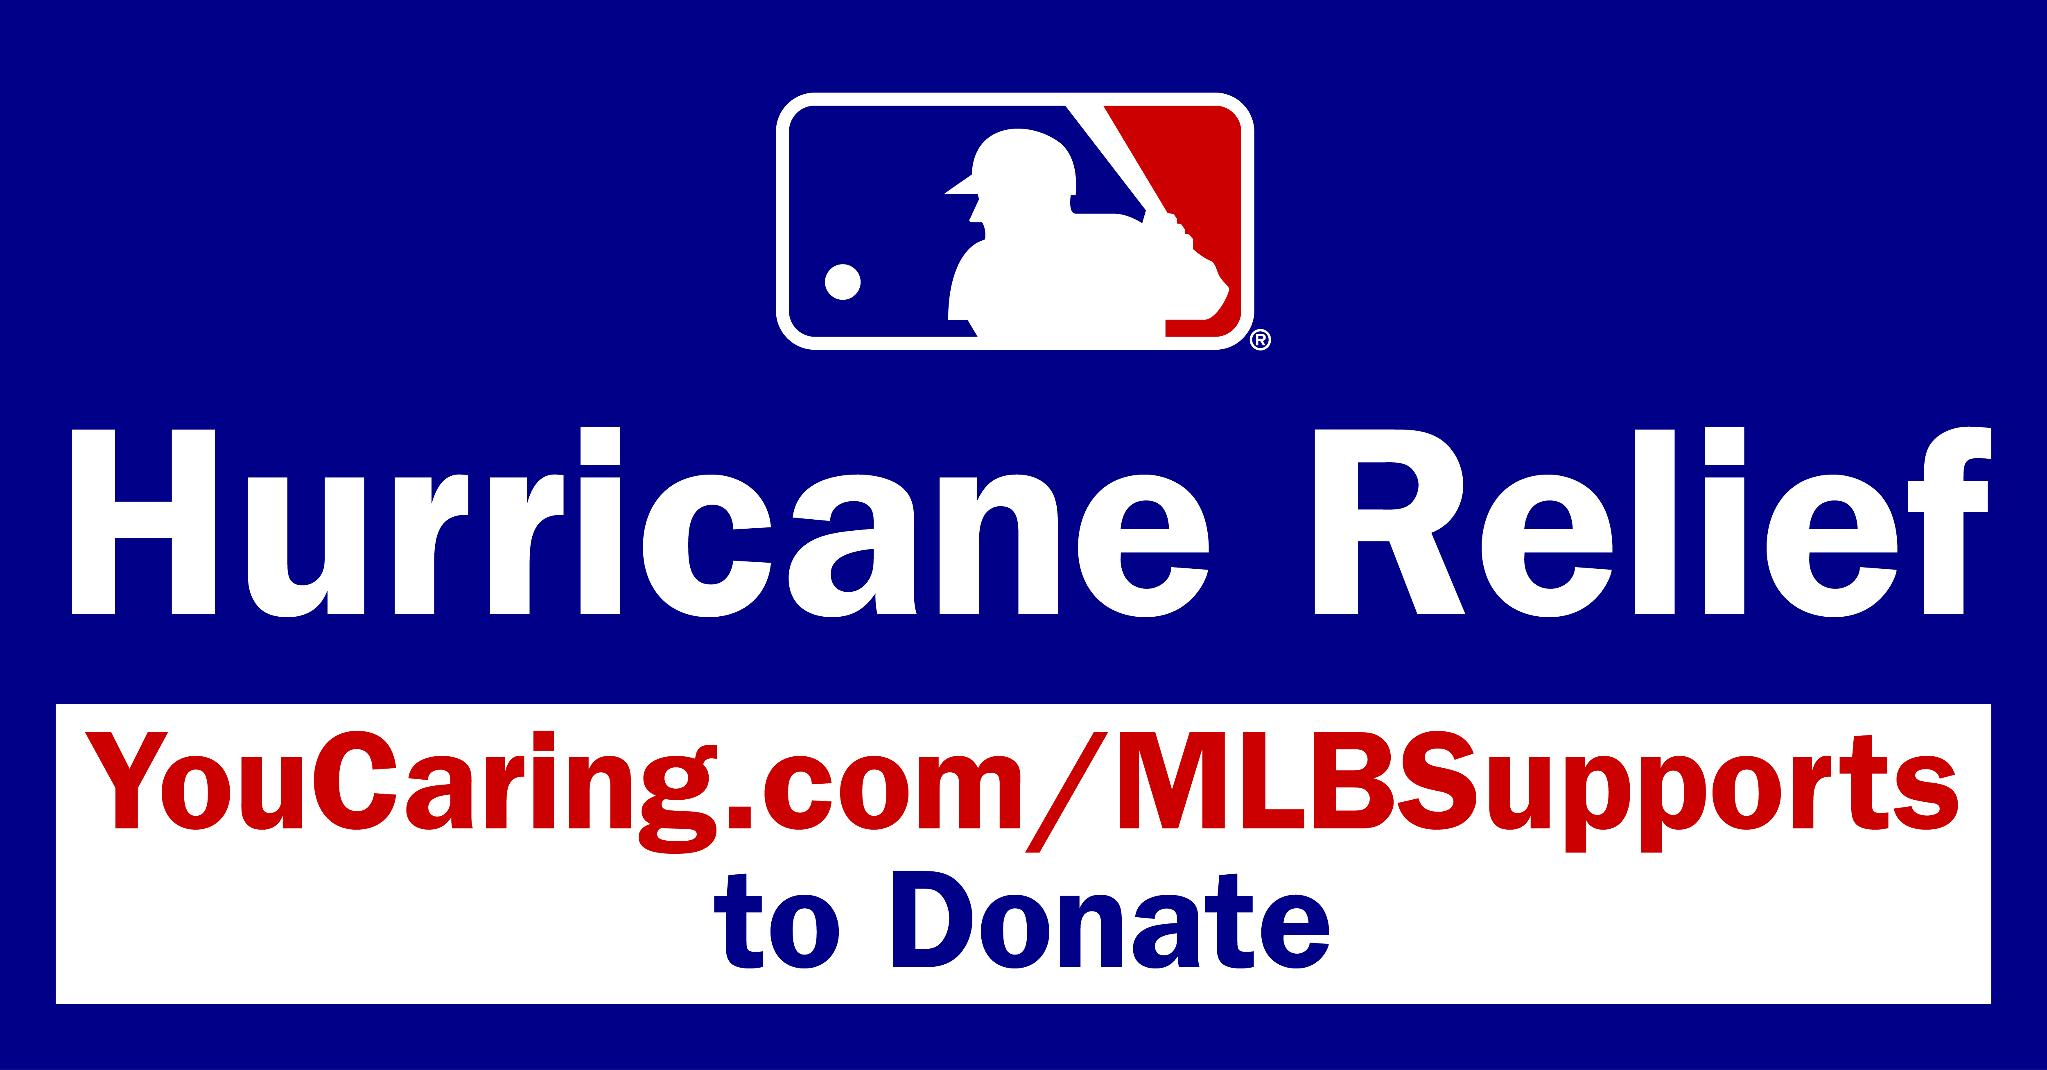 Click here to support Tampa Bay Rays Hurricane Irma Relief Fund